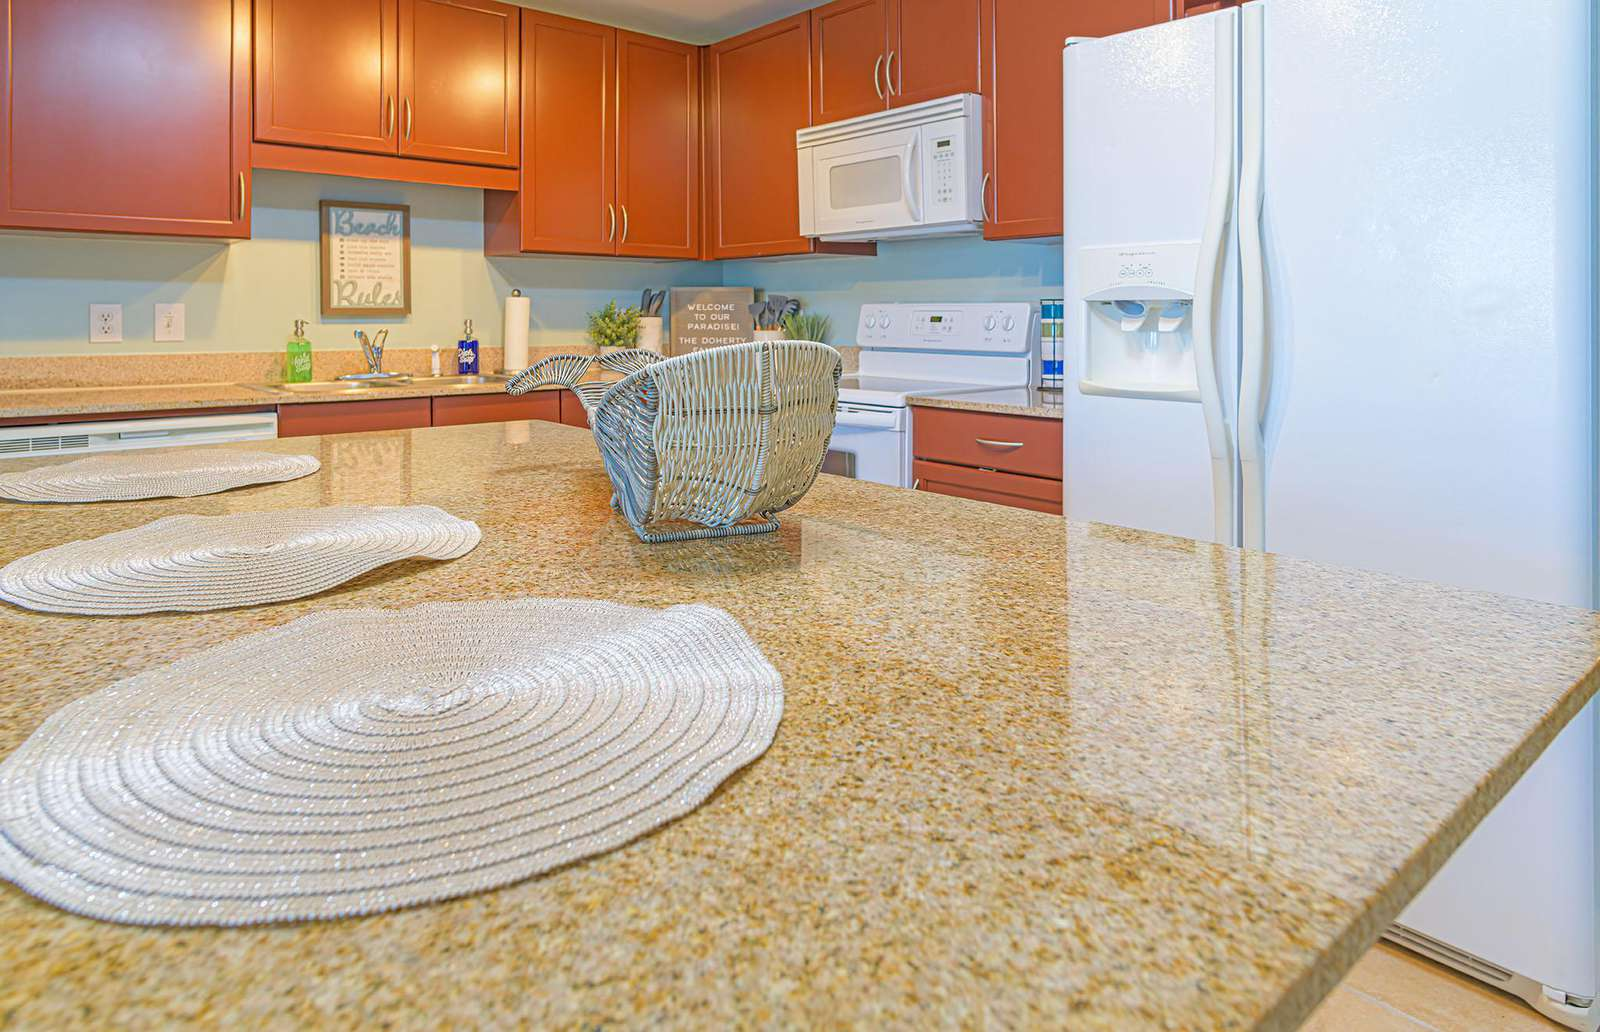 The eat-in kitchen with large island is stocked with the basics!